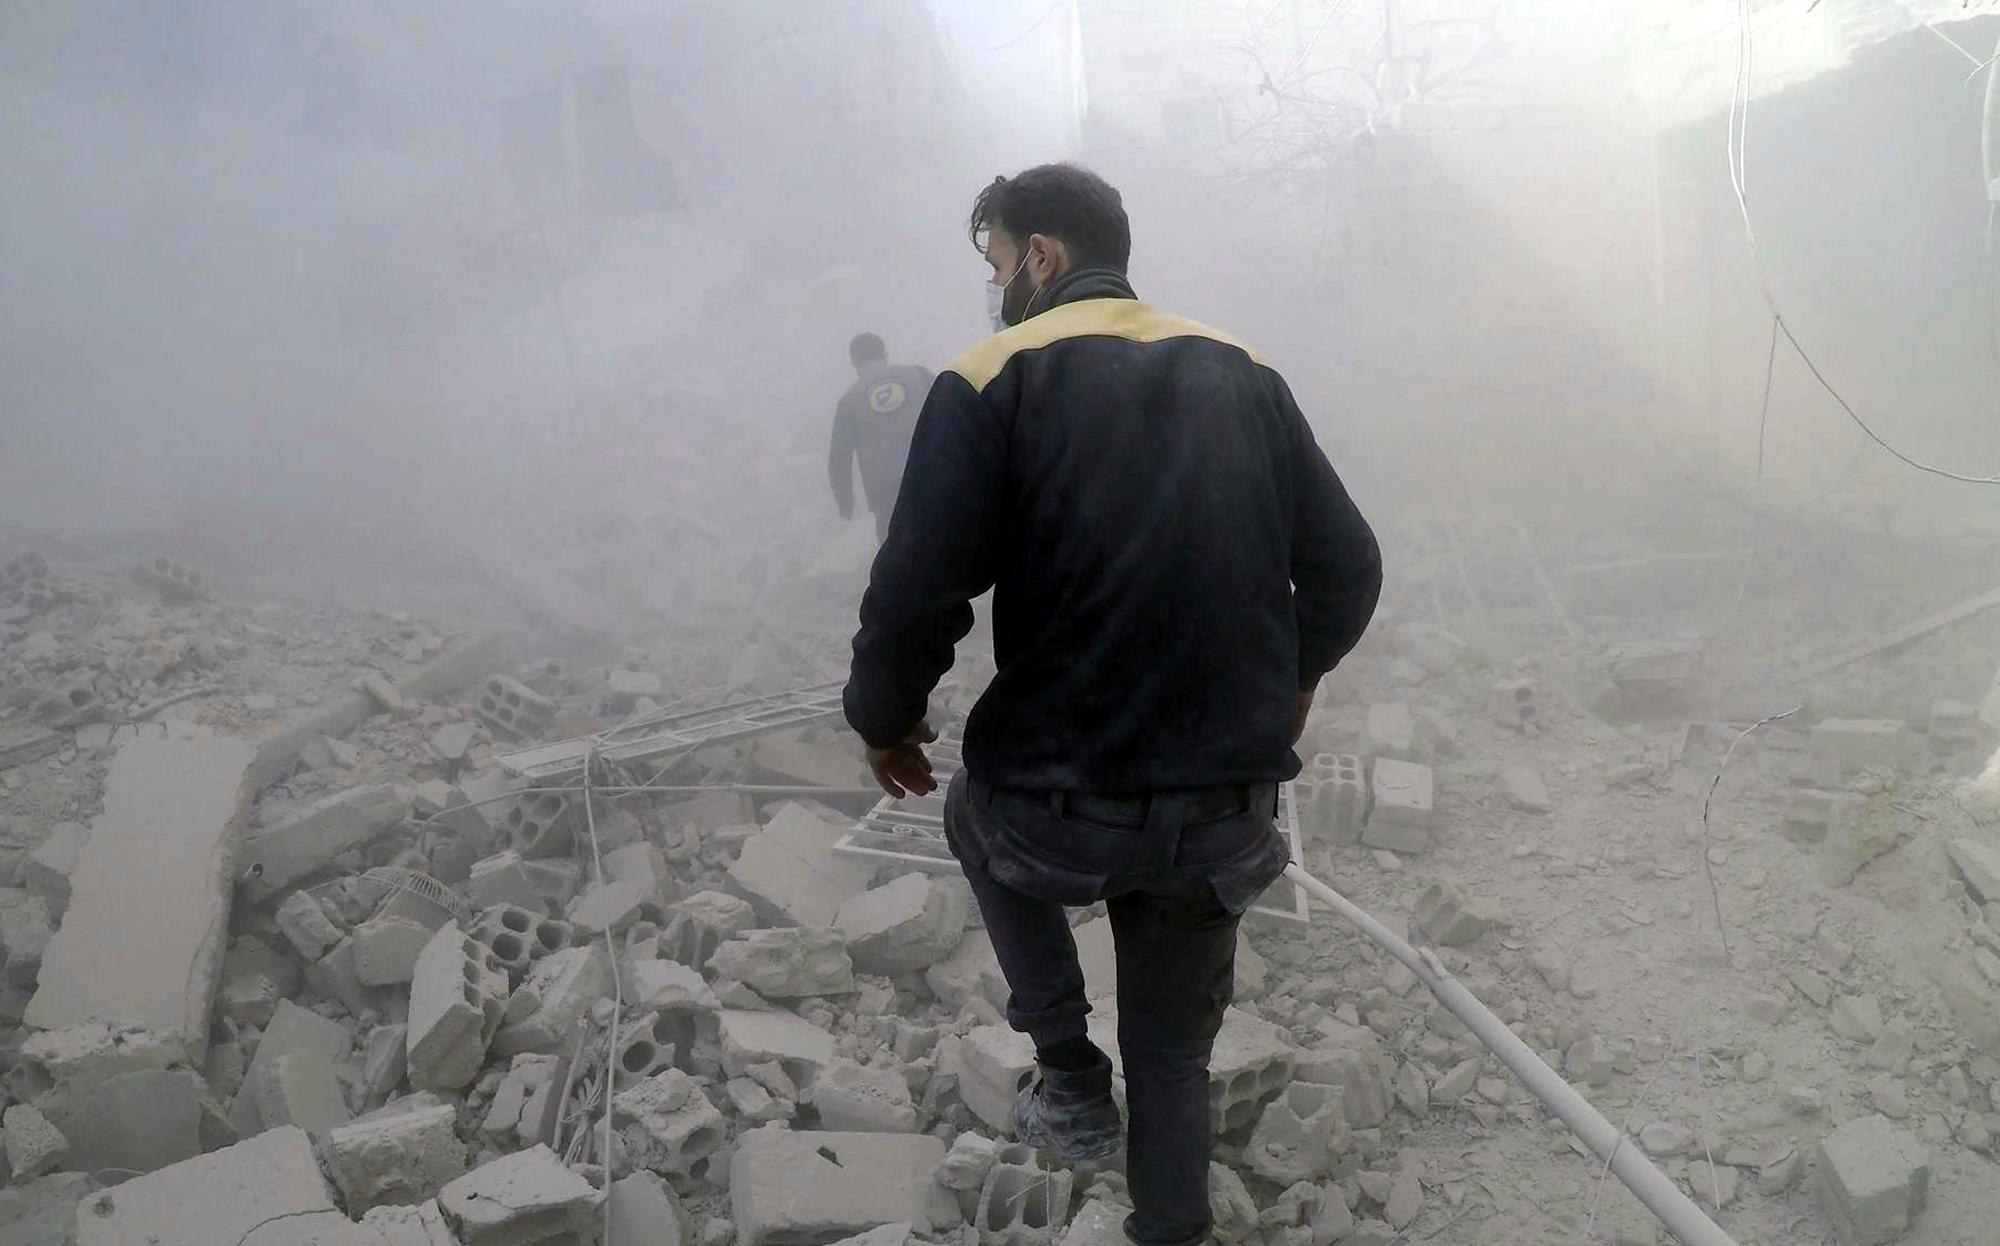 This photo provided by the Syrian Civil Defense White Helmets, which has been authenticated based on its contents and other AP reporting, shows civil defense workers searching for survivors after airstrikes hit a rebel-held suburb near Damascus, Syria, Thursday, Feb. 8, 2018. Syrian rescue workers and activists say the death toll from ongoing government strikes on the opposition-held region near the capital Damascus has risen to at least 35. (Syrian Civil Defense White Helmets via AP)